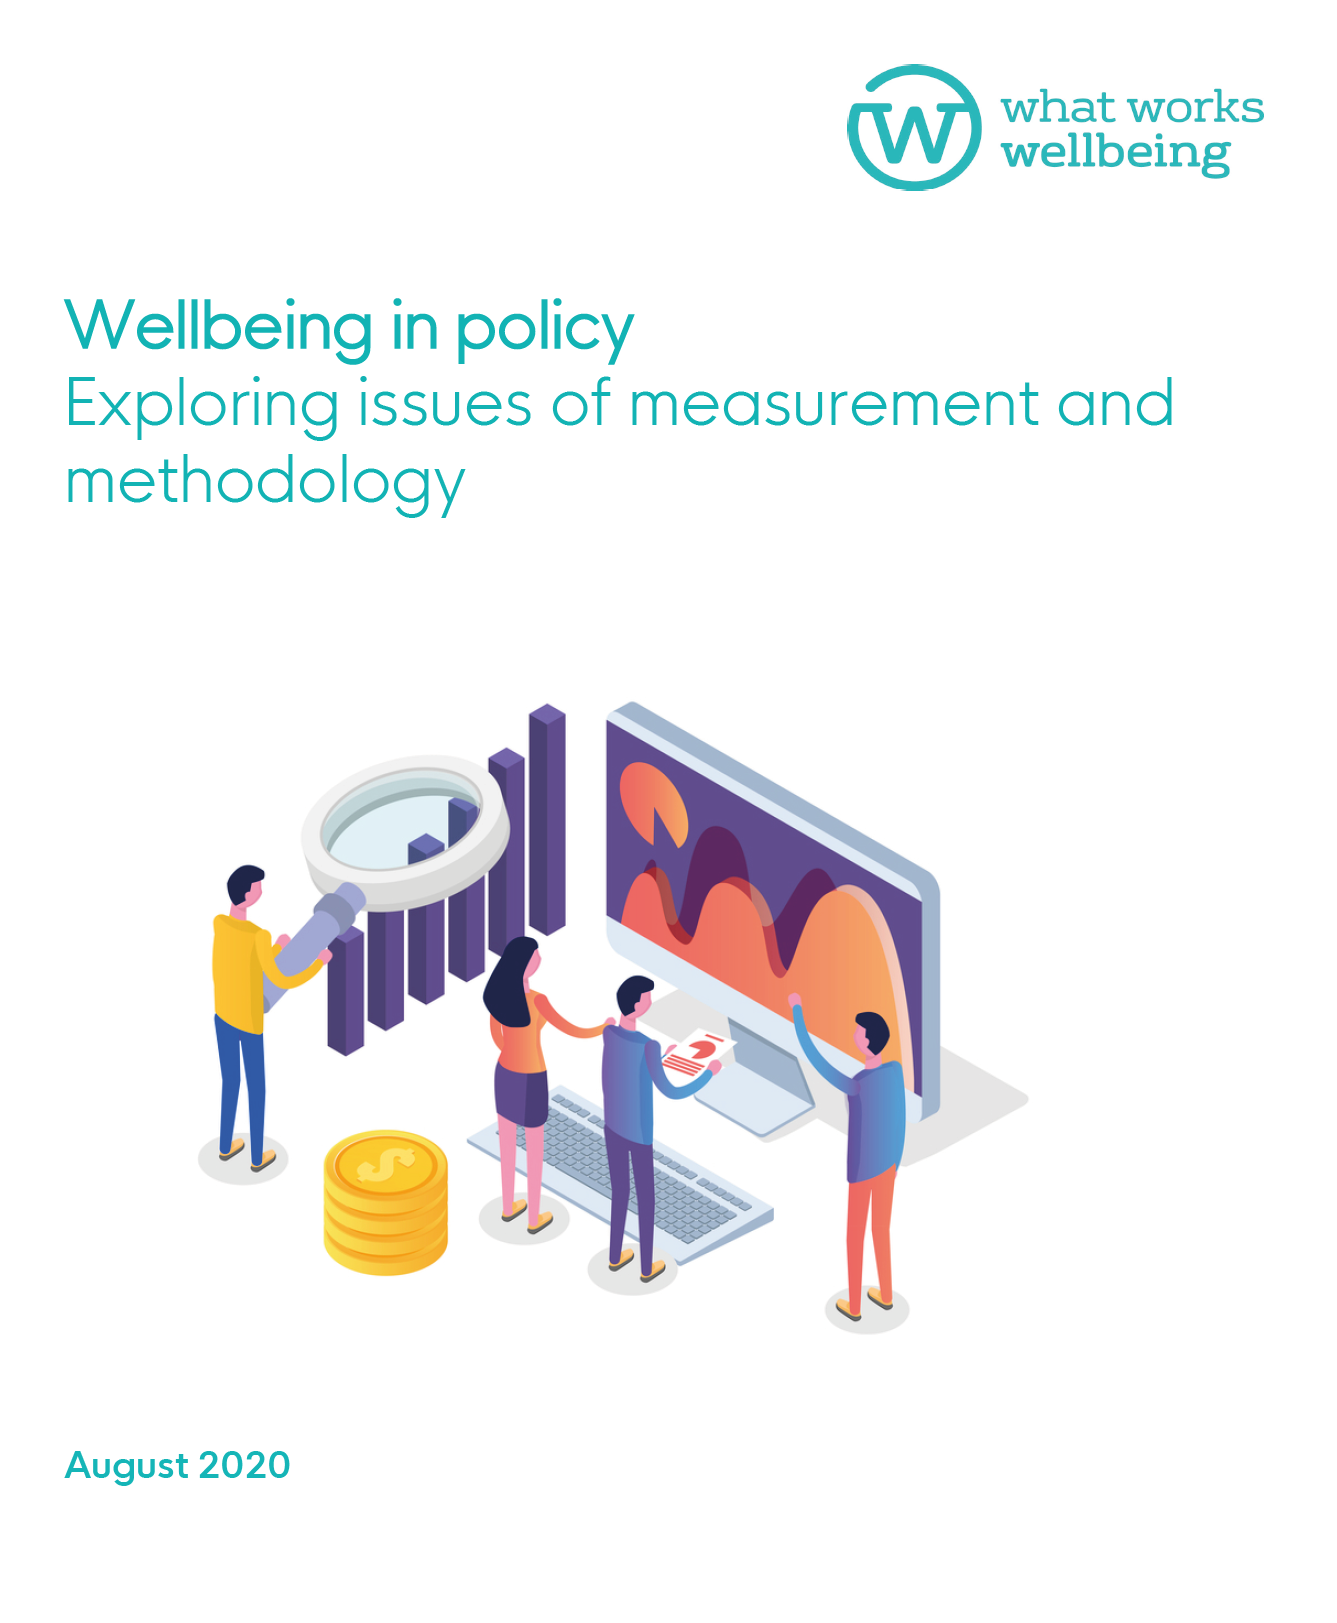 Wellbeing in policy: exploring issues of measurement and methodology